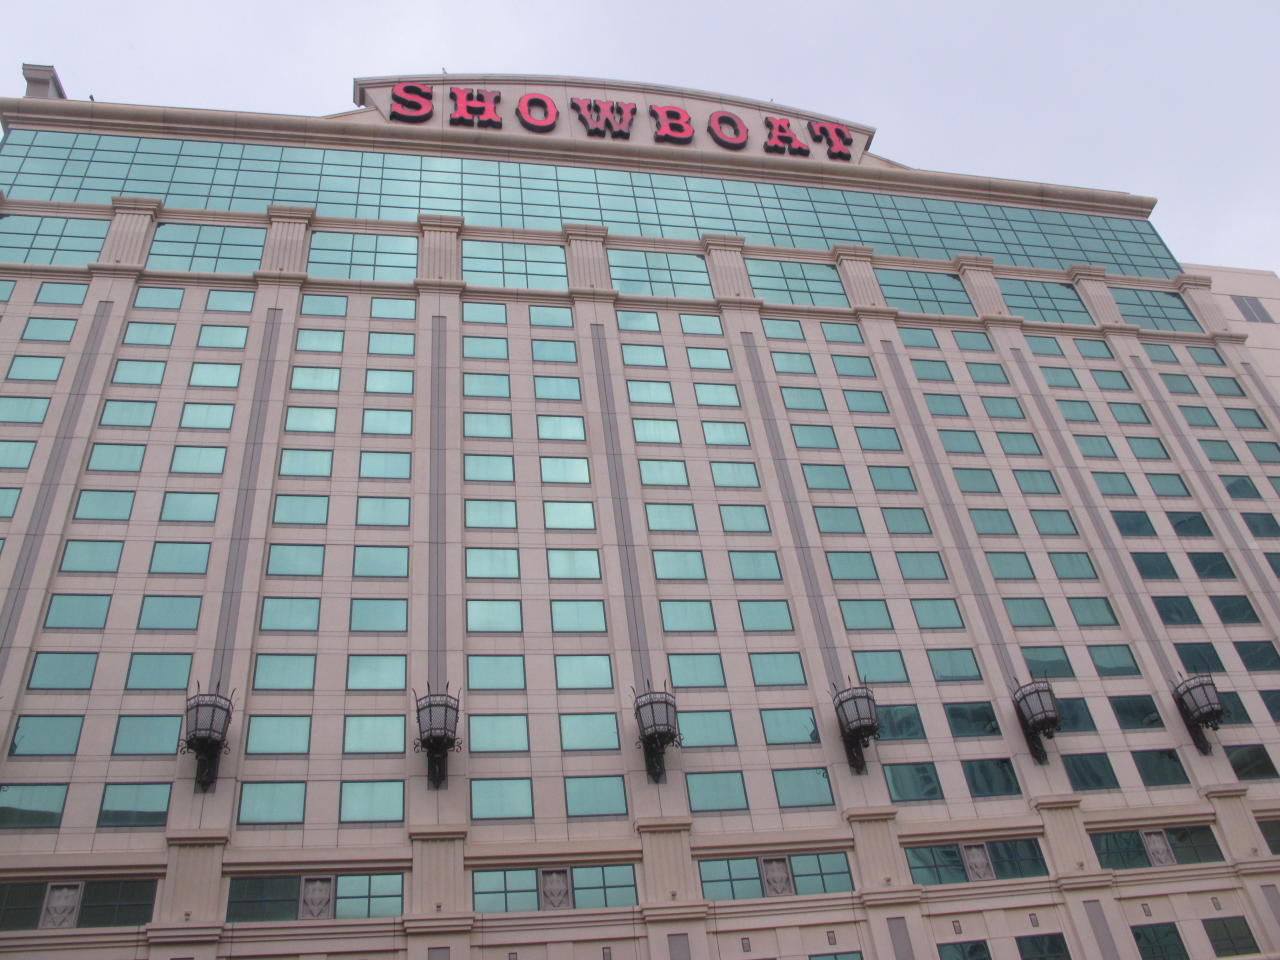 <p> This Nov. 20, 2018 photo shows the exterior of the Showboat hotel in Atlantic City, N.J. on the day that New Jersey authorities approved a plan to convert 400 of the former casino's hotel rooms into 264 market-rate apartments. (AP Photo/Wayne Parry) </p>